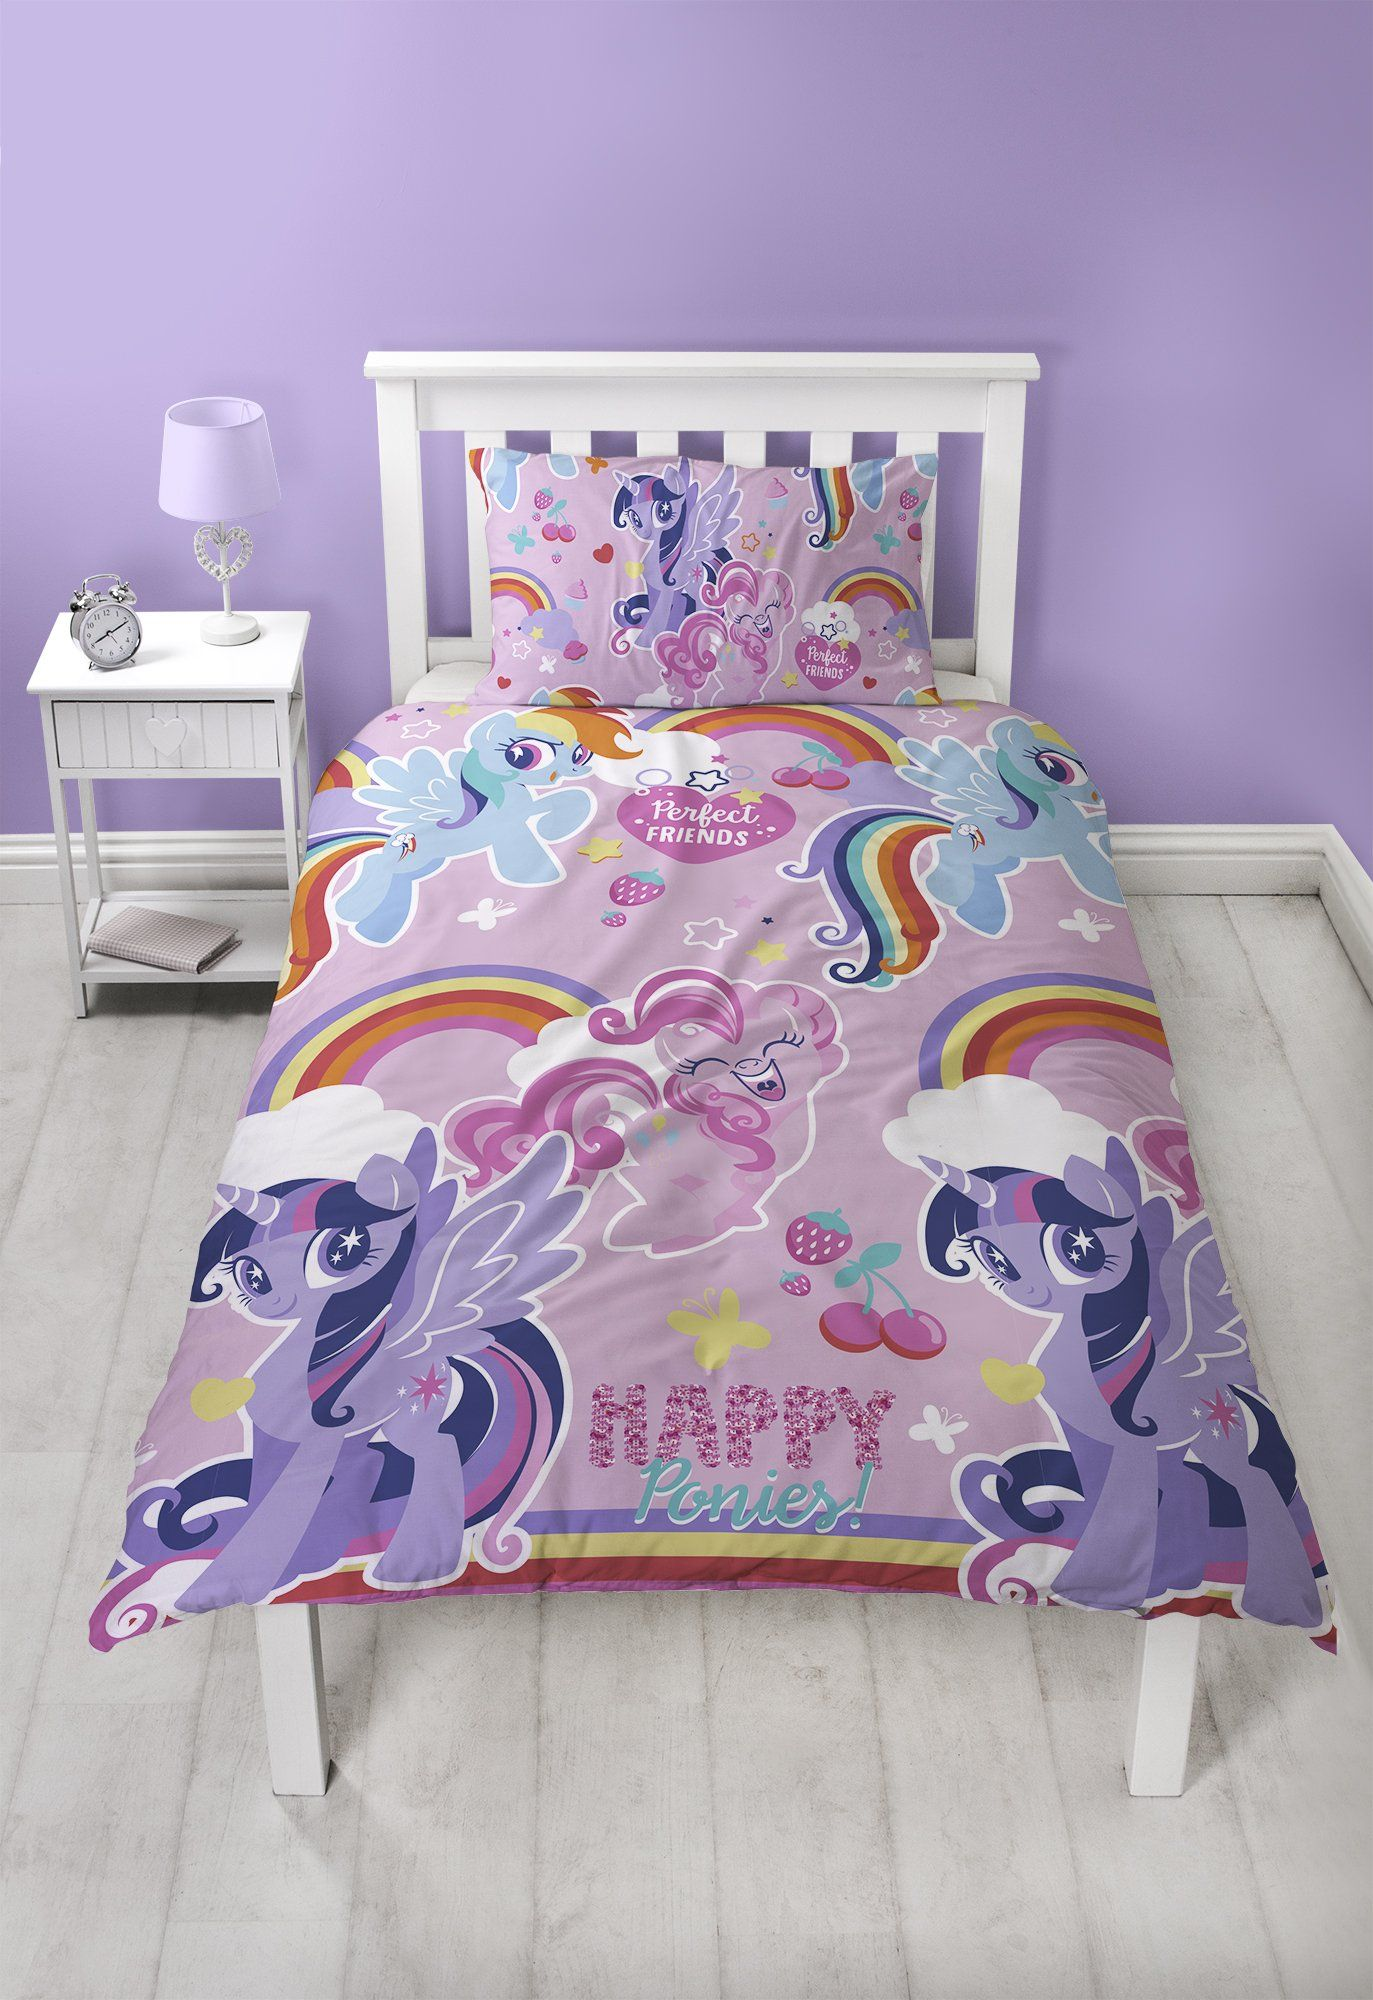 This Amazing My Little Pony Bedding Set Is Guaranteed To Make Your Little One Happy This Bedtime Our Amazing Cool Beds My Little Pony Bedding Favorite Bedding